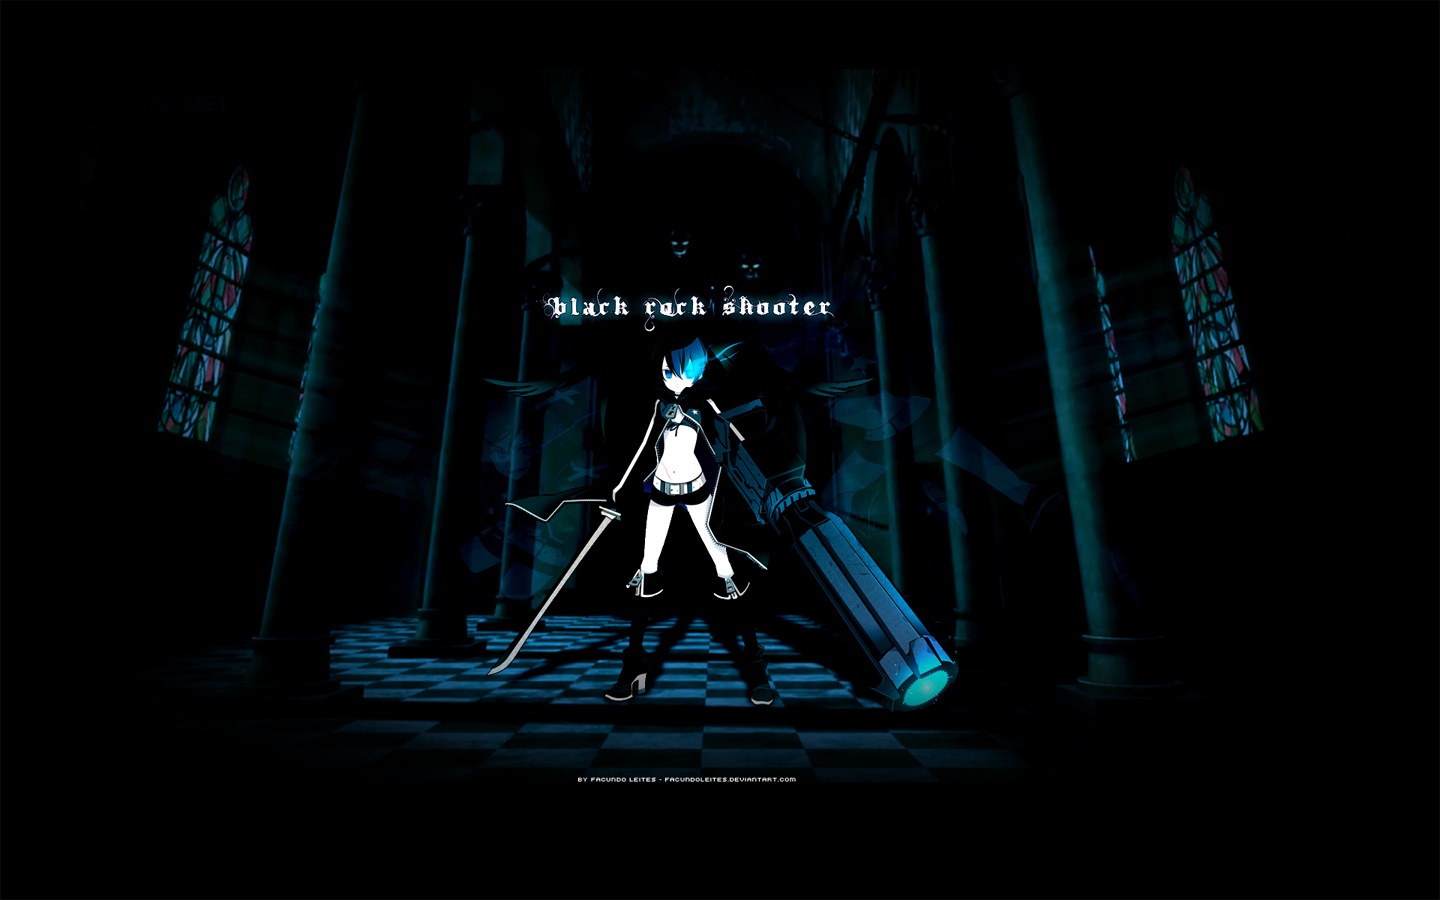 Anime Naruto Wallpaper Girl Black Rock Shooter Wallpapers Pack 16 04 12